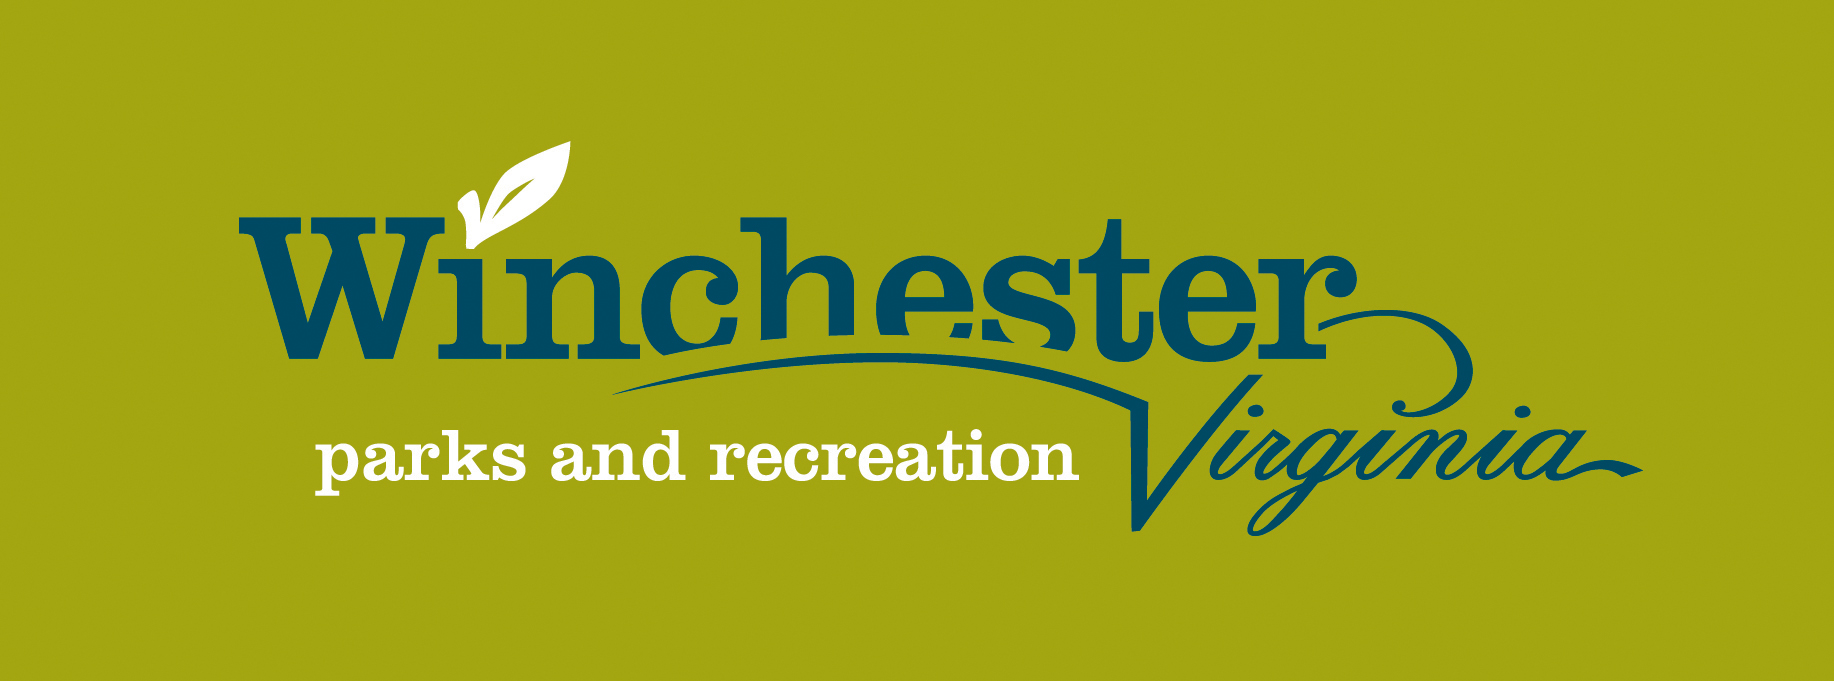 Winchester Parks & Recreation